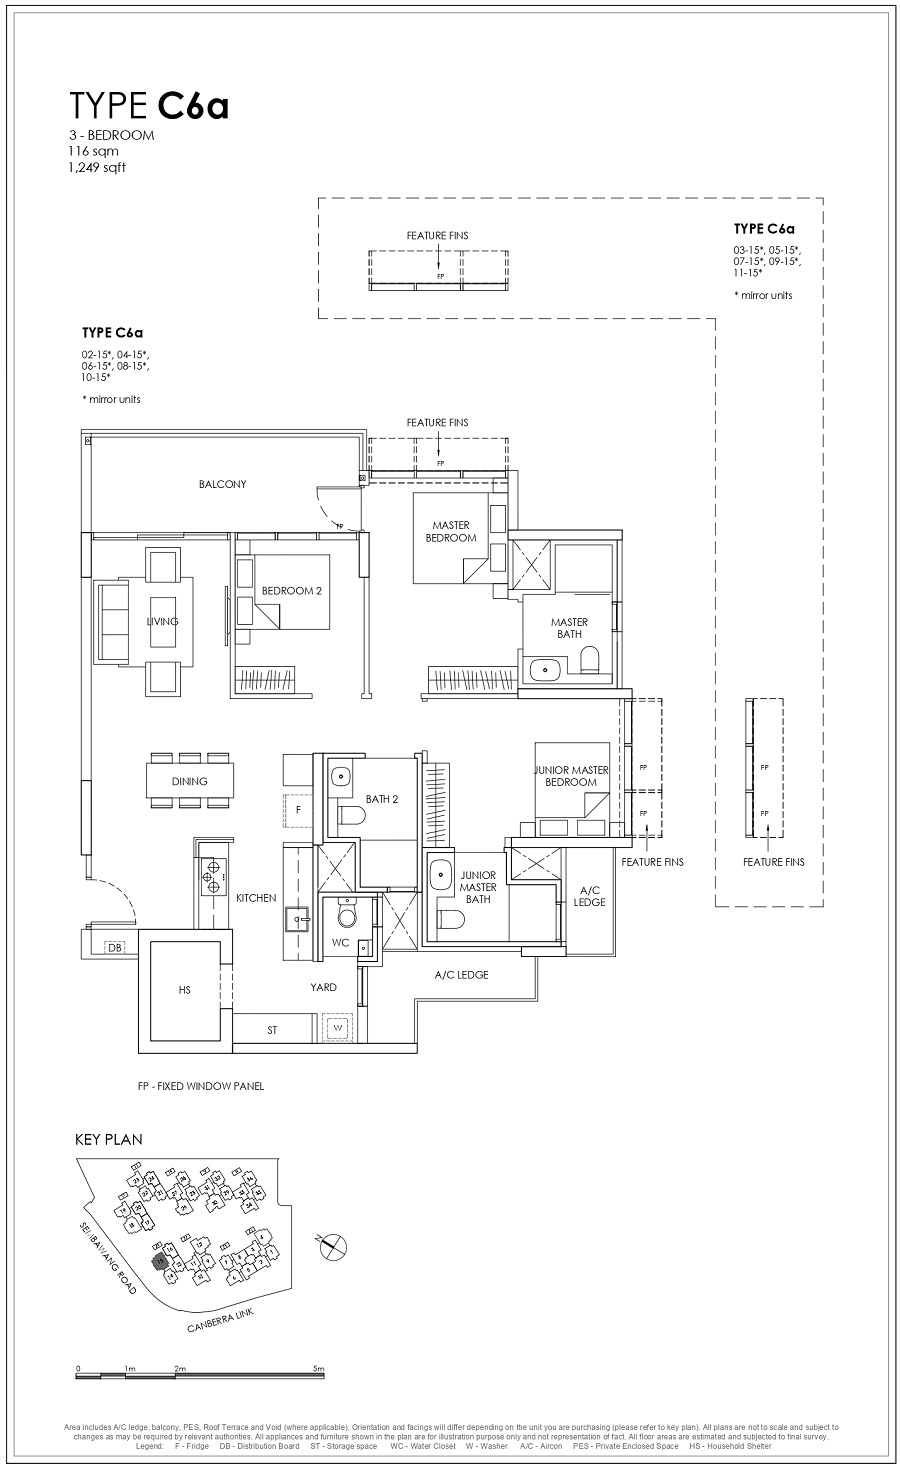 Provence Residence EC 3BR Type C6a 116_1249